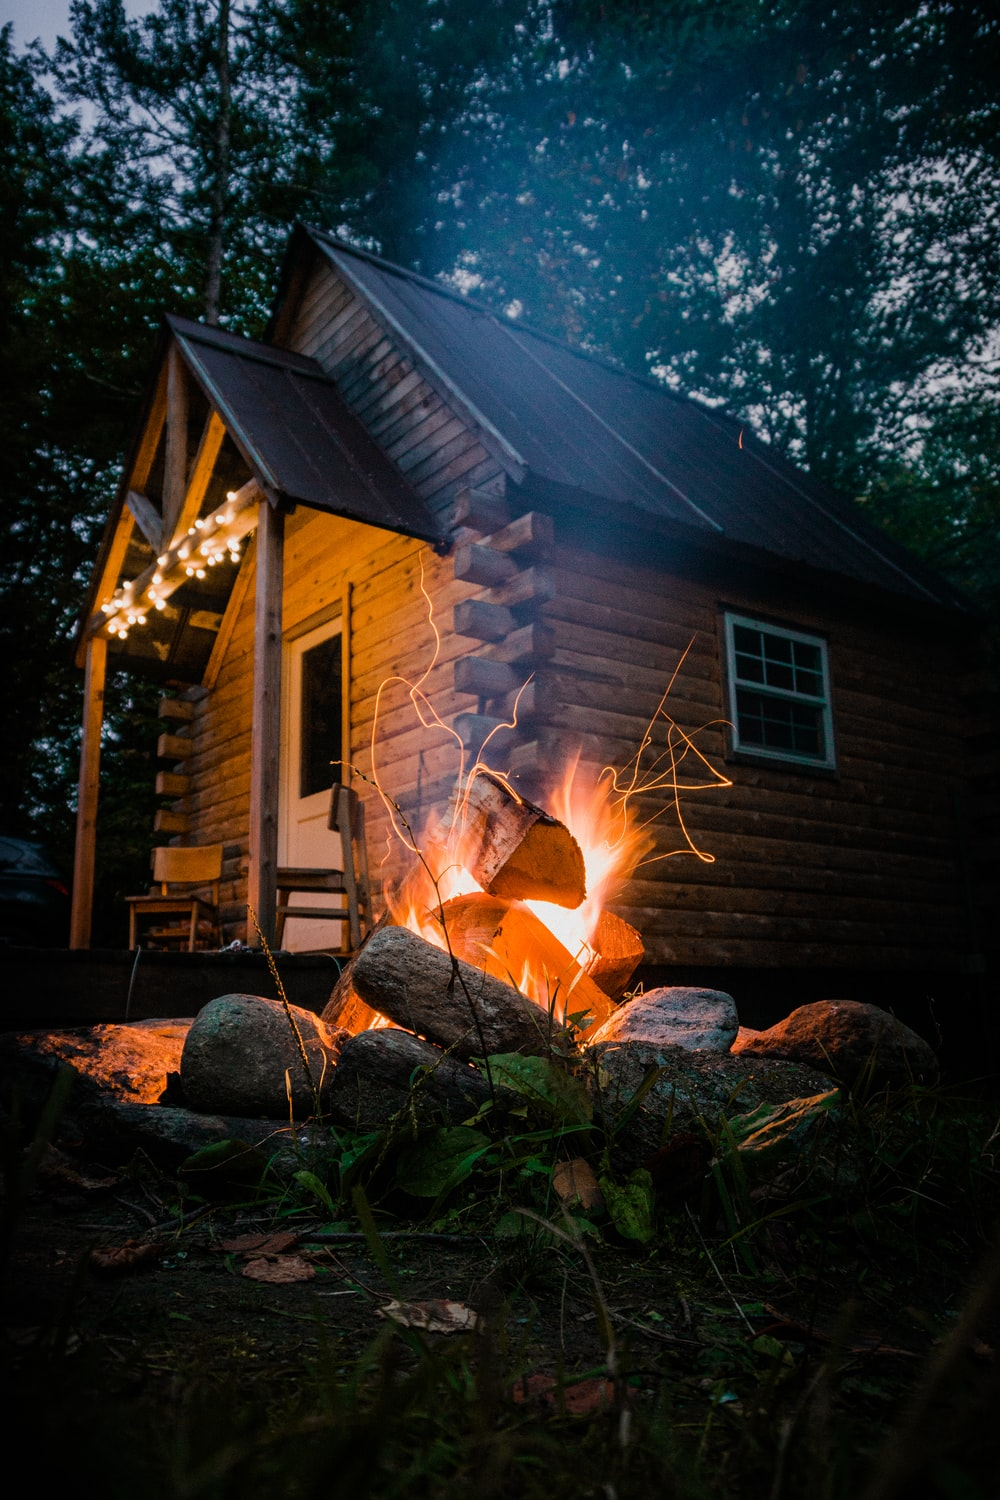 brown wooden house with fire during night time